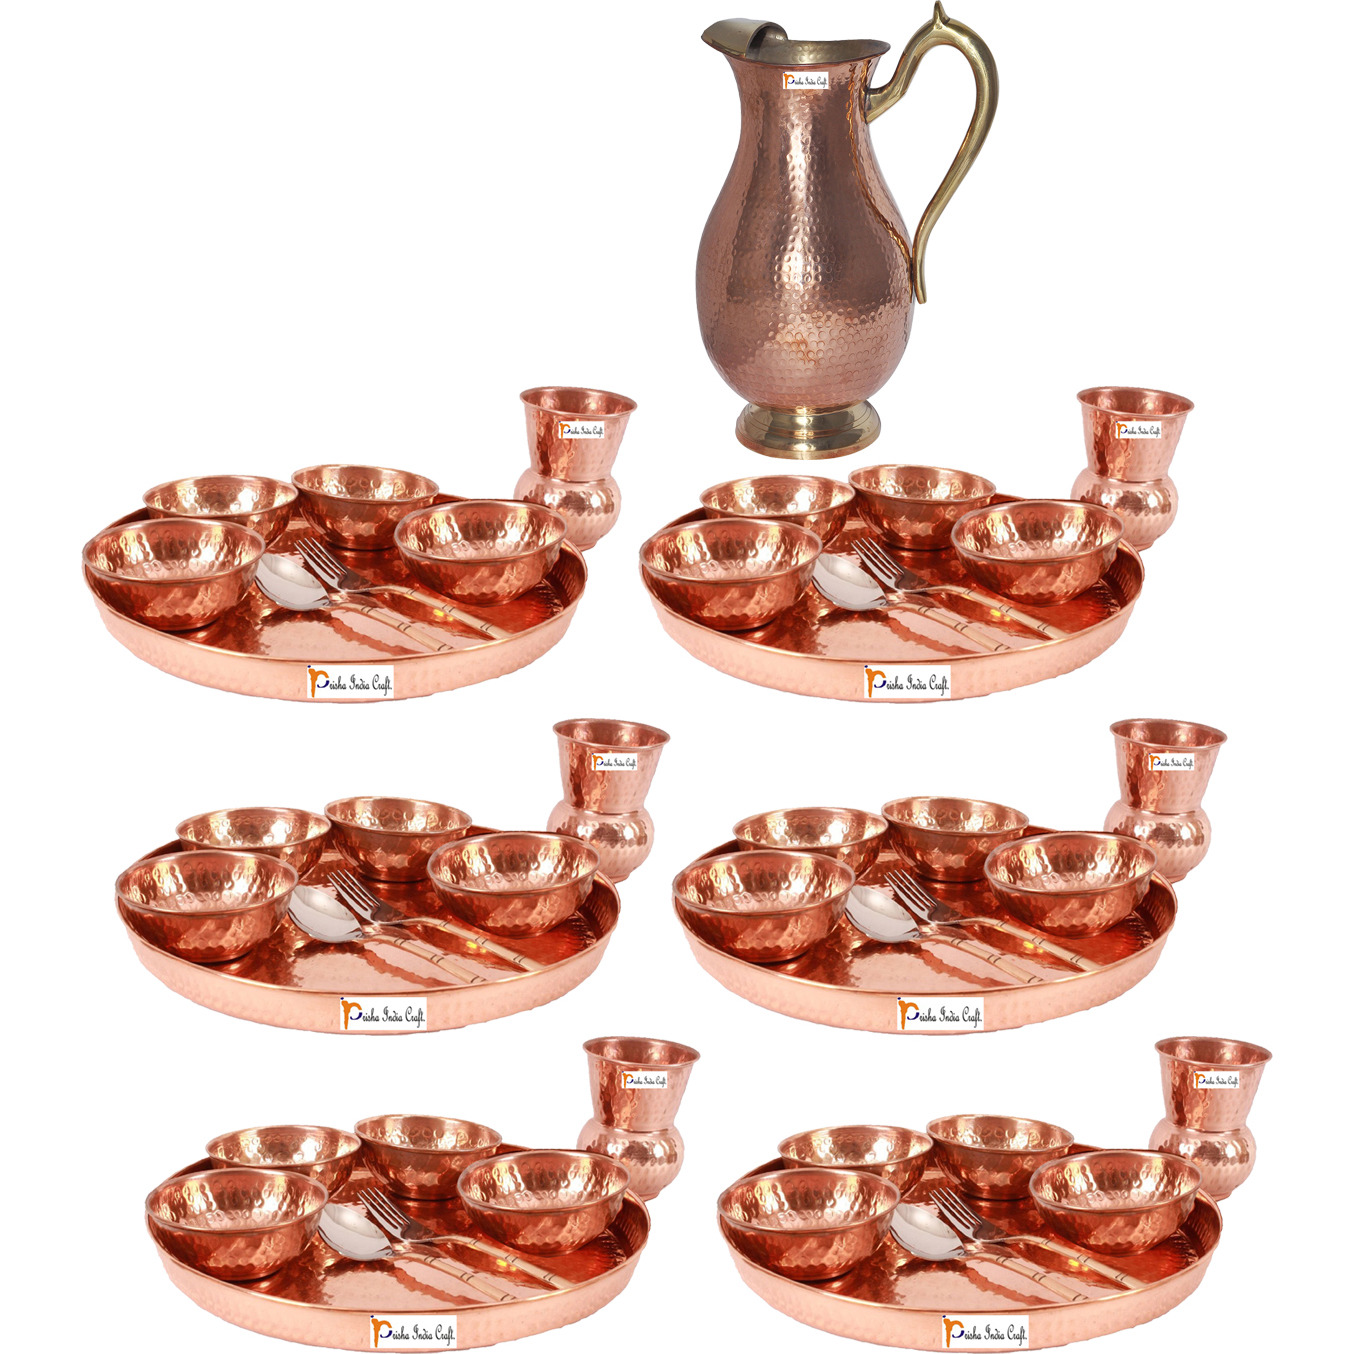 Prisha India Craft B. Set of 6 Dinnerware Traditional 100% Pure Copper Dinner Set of Thali Plate, Bowls, Glass and Spoon, Dia 12  With 1 Pure Copper Mughal Pitcher Jug - Christmas Gift